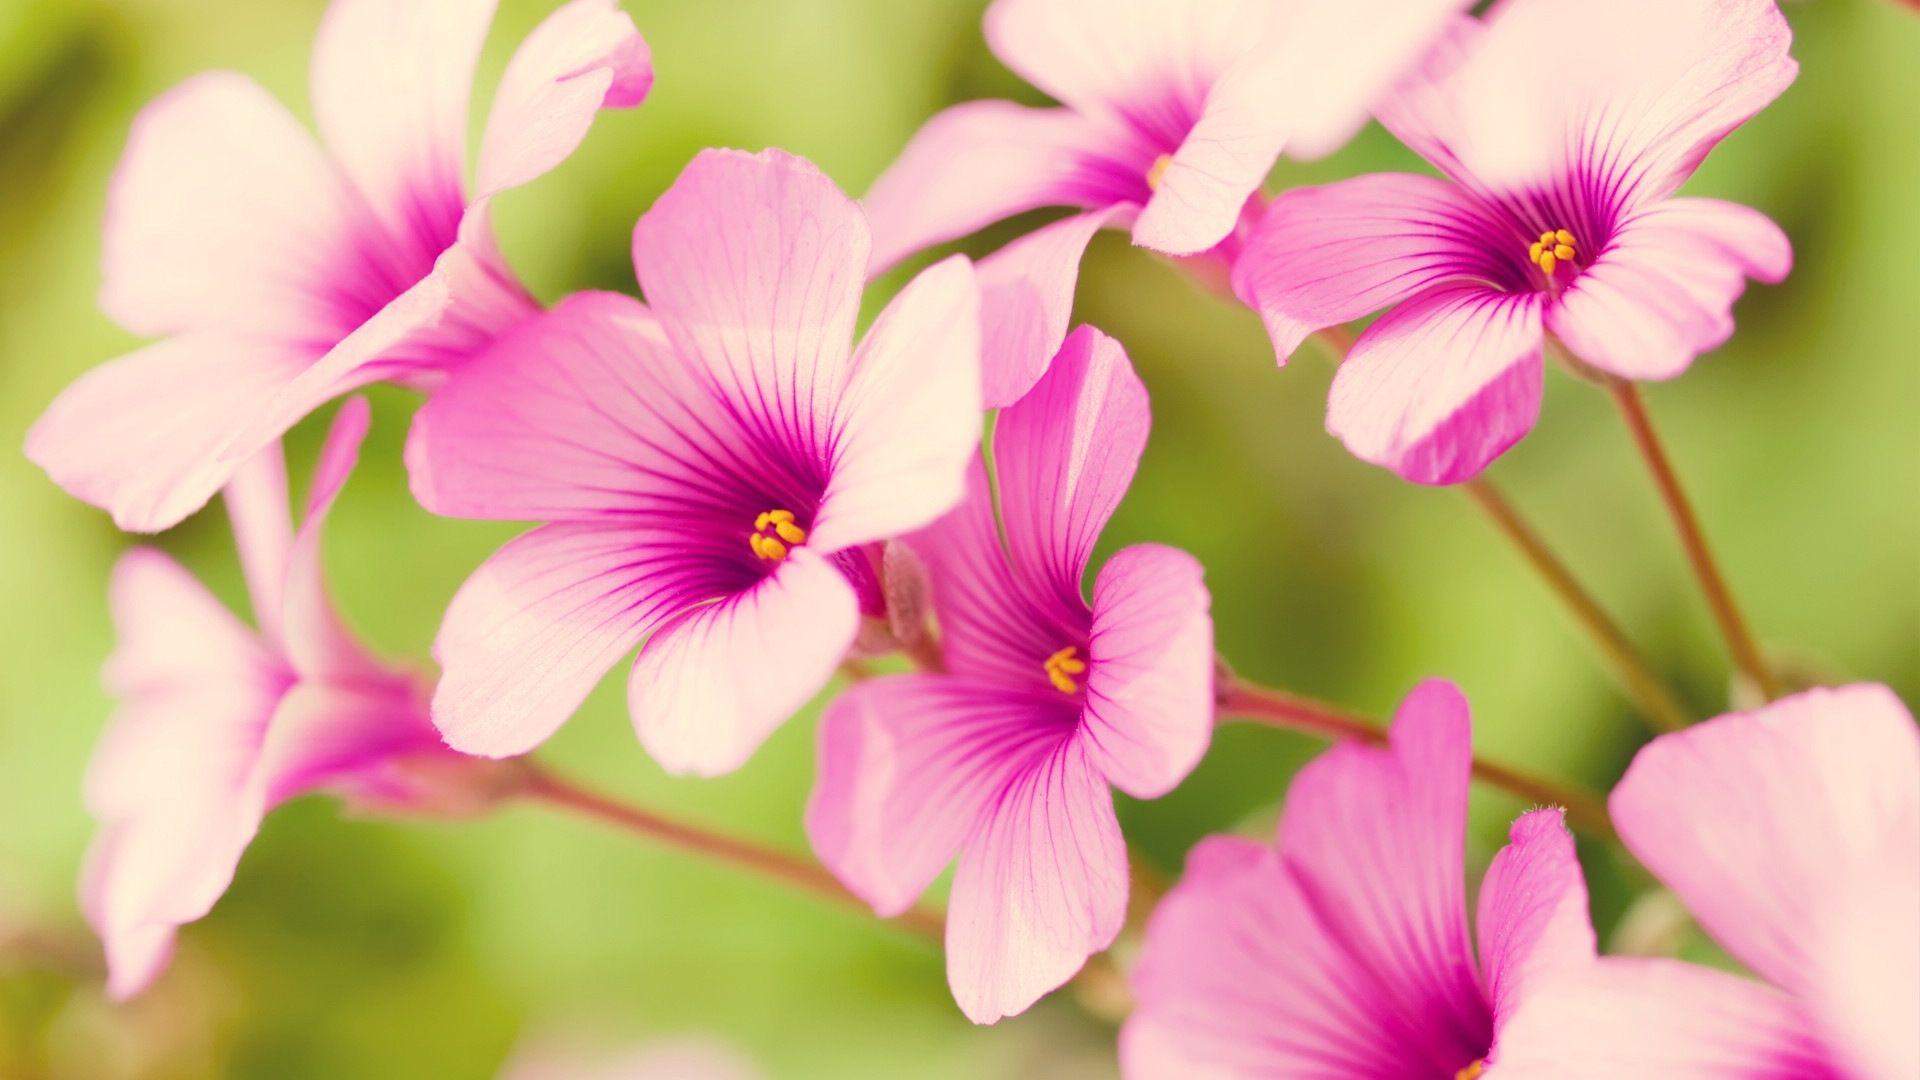 Spring flowers spring flower 1920x1080 wallpapers 1920x1080 spring flowers spring flower 1920x1080 wallpapers 1920x1080 wallpapers pictures mightylinksfo